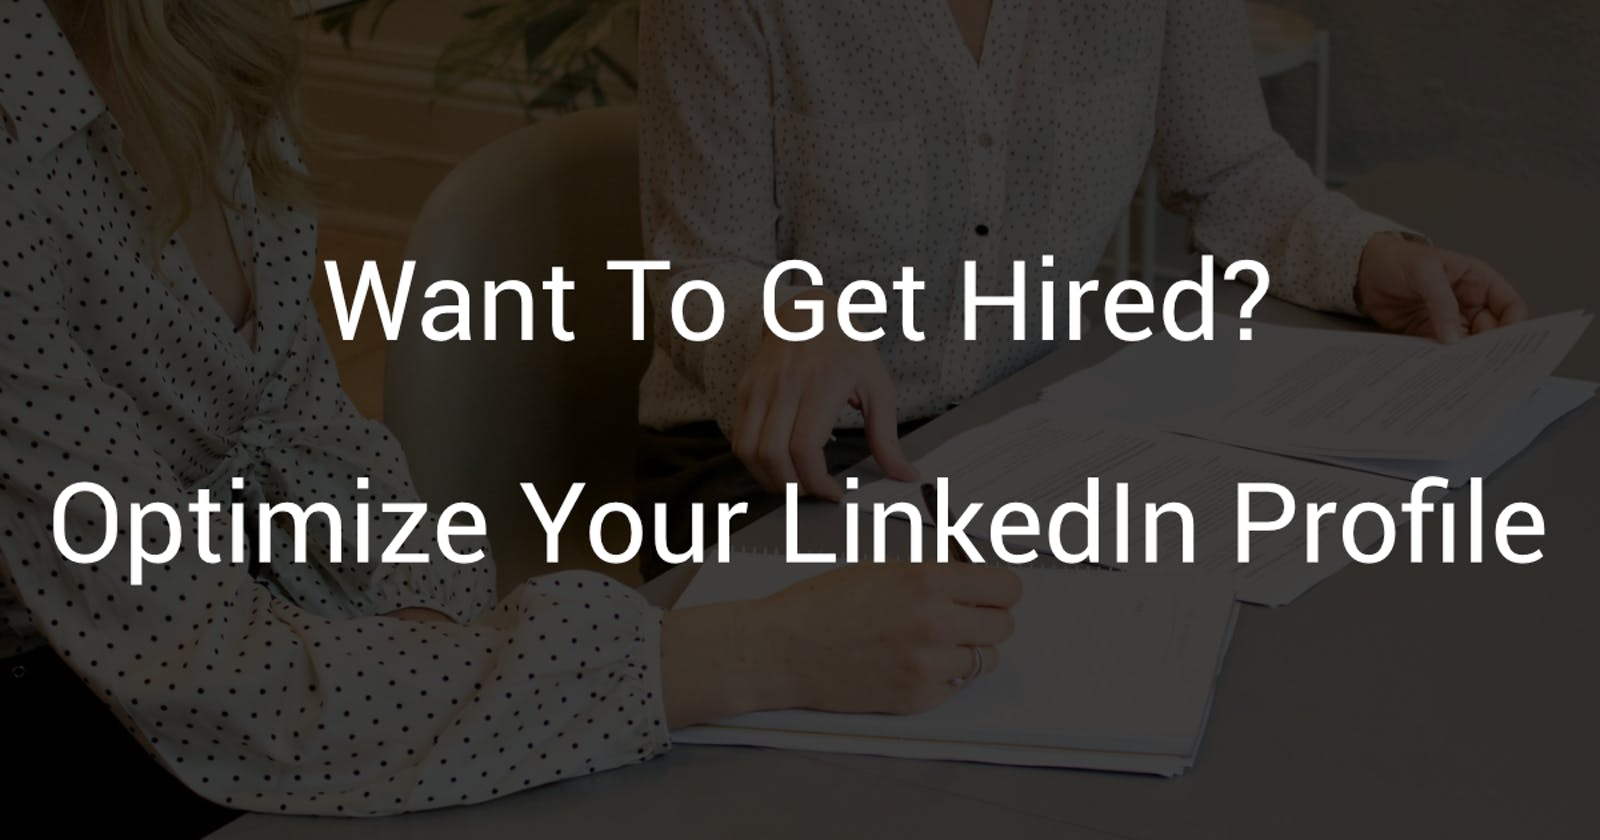 Want To Get Hired? - Optimize Your LinkedIn Profile